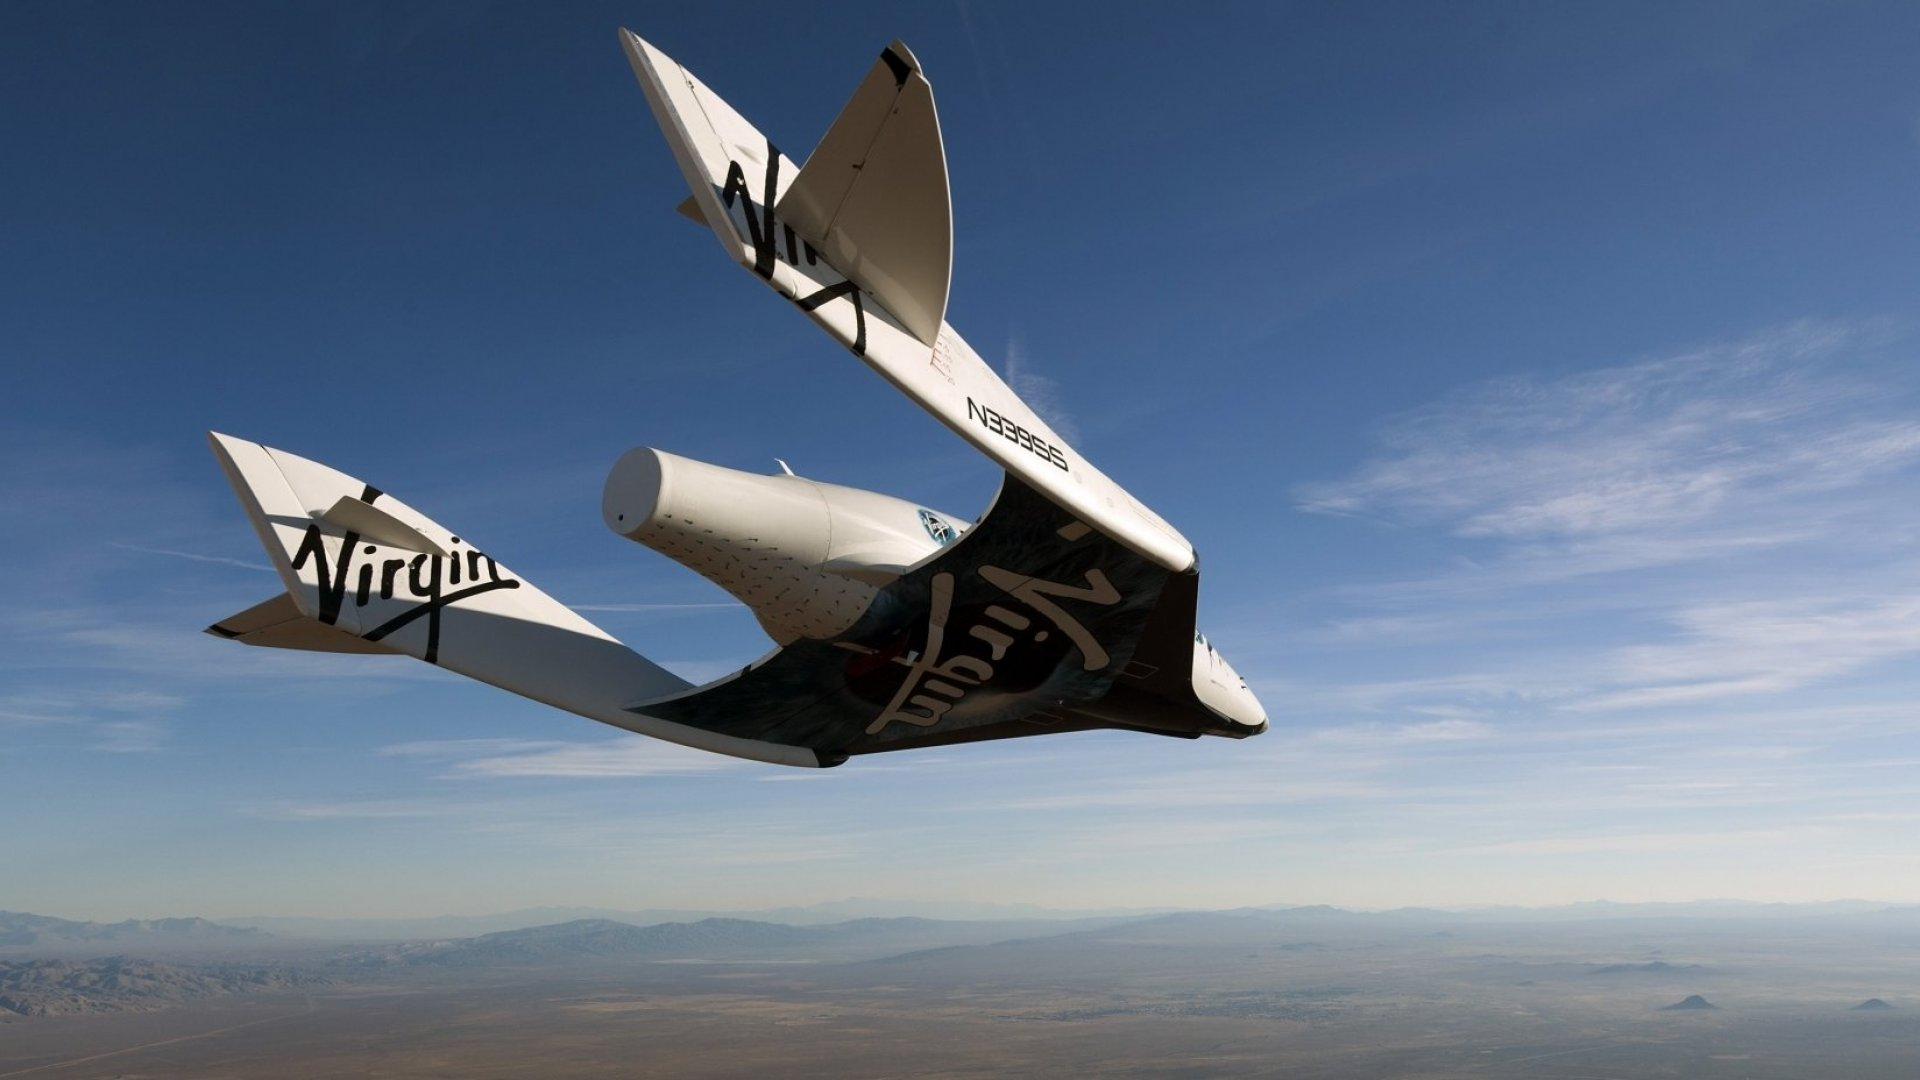 Richard Branson's Space Tourism Business Virgin Galactic Is Going Public